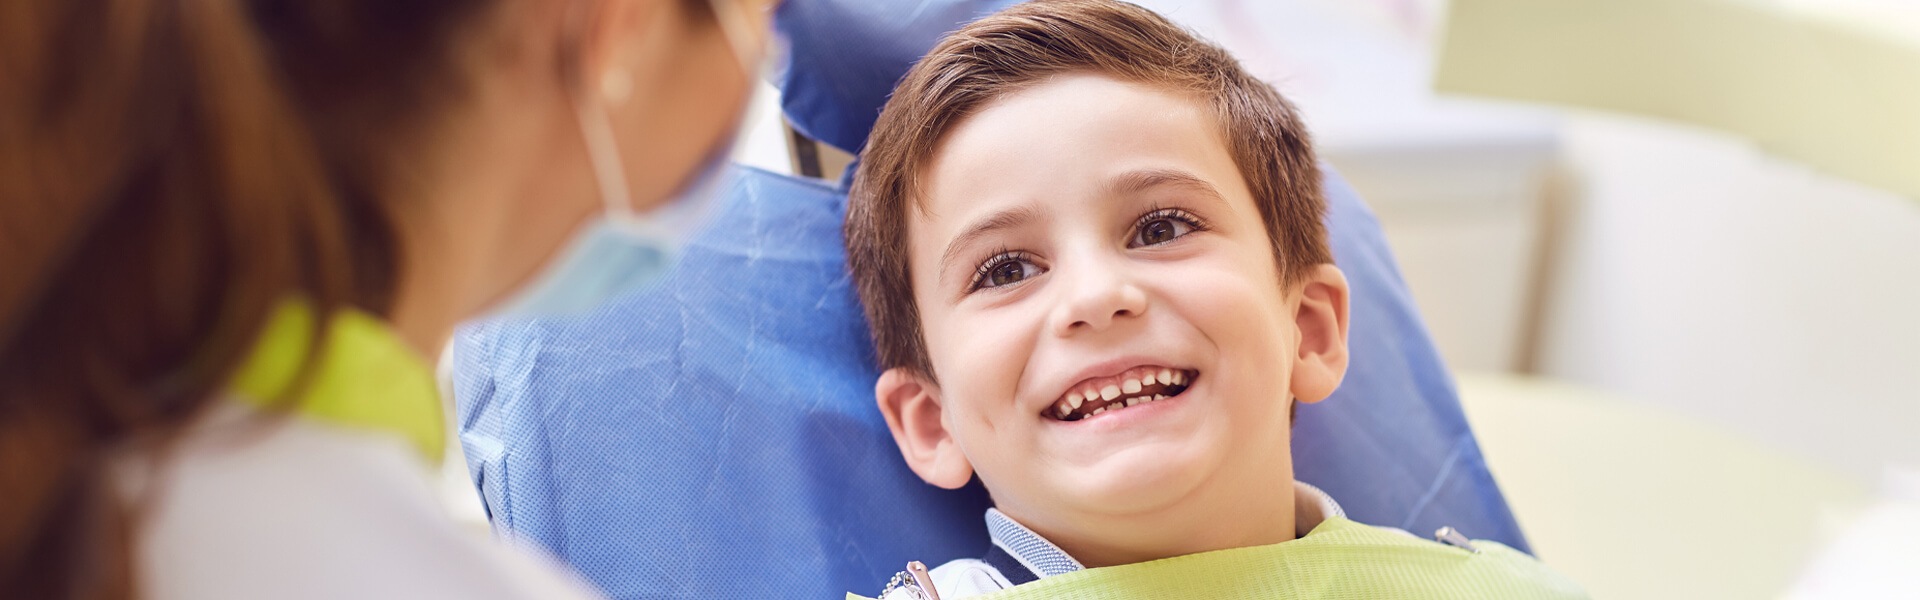 Does Your Child Benefit from Visiting Kids Dentistry?